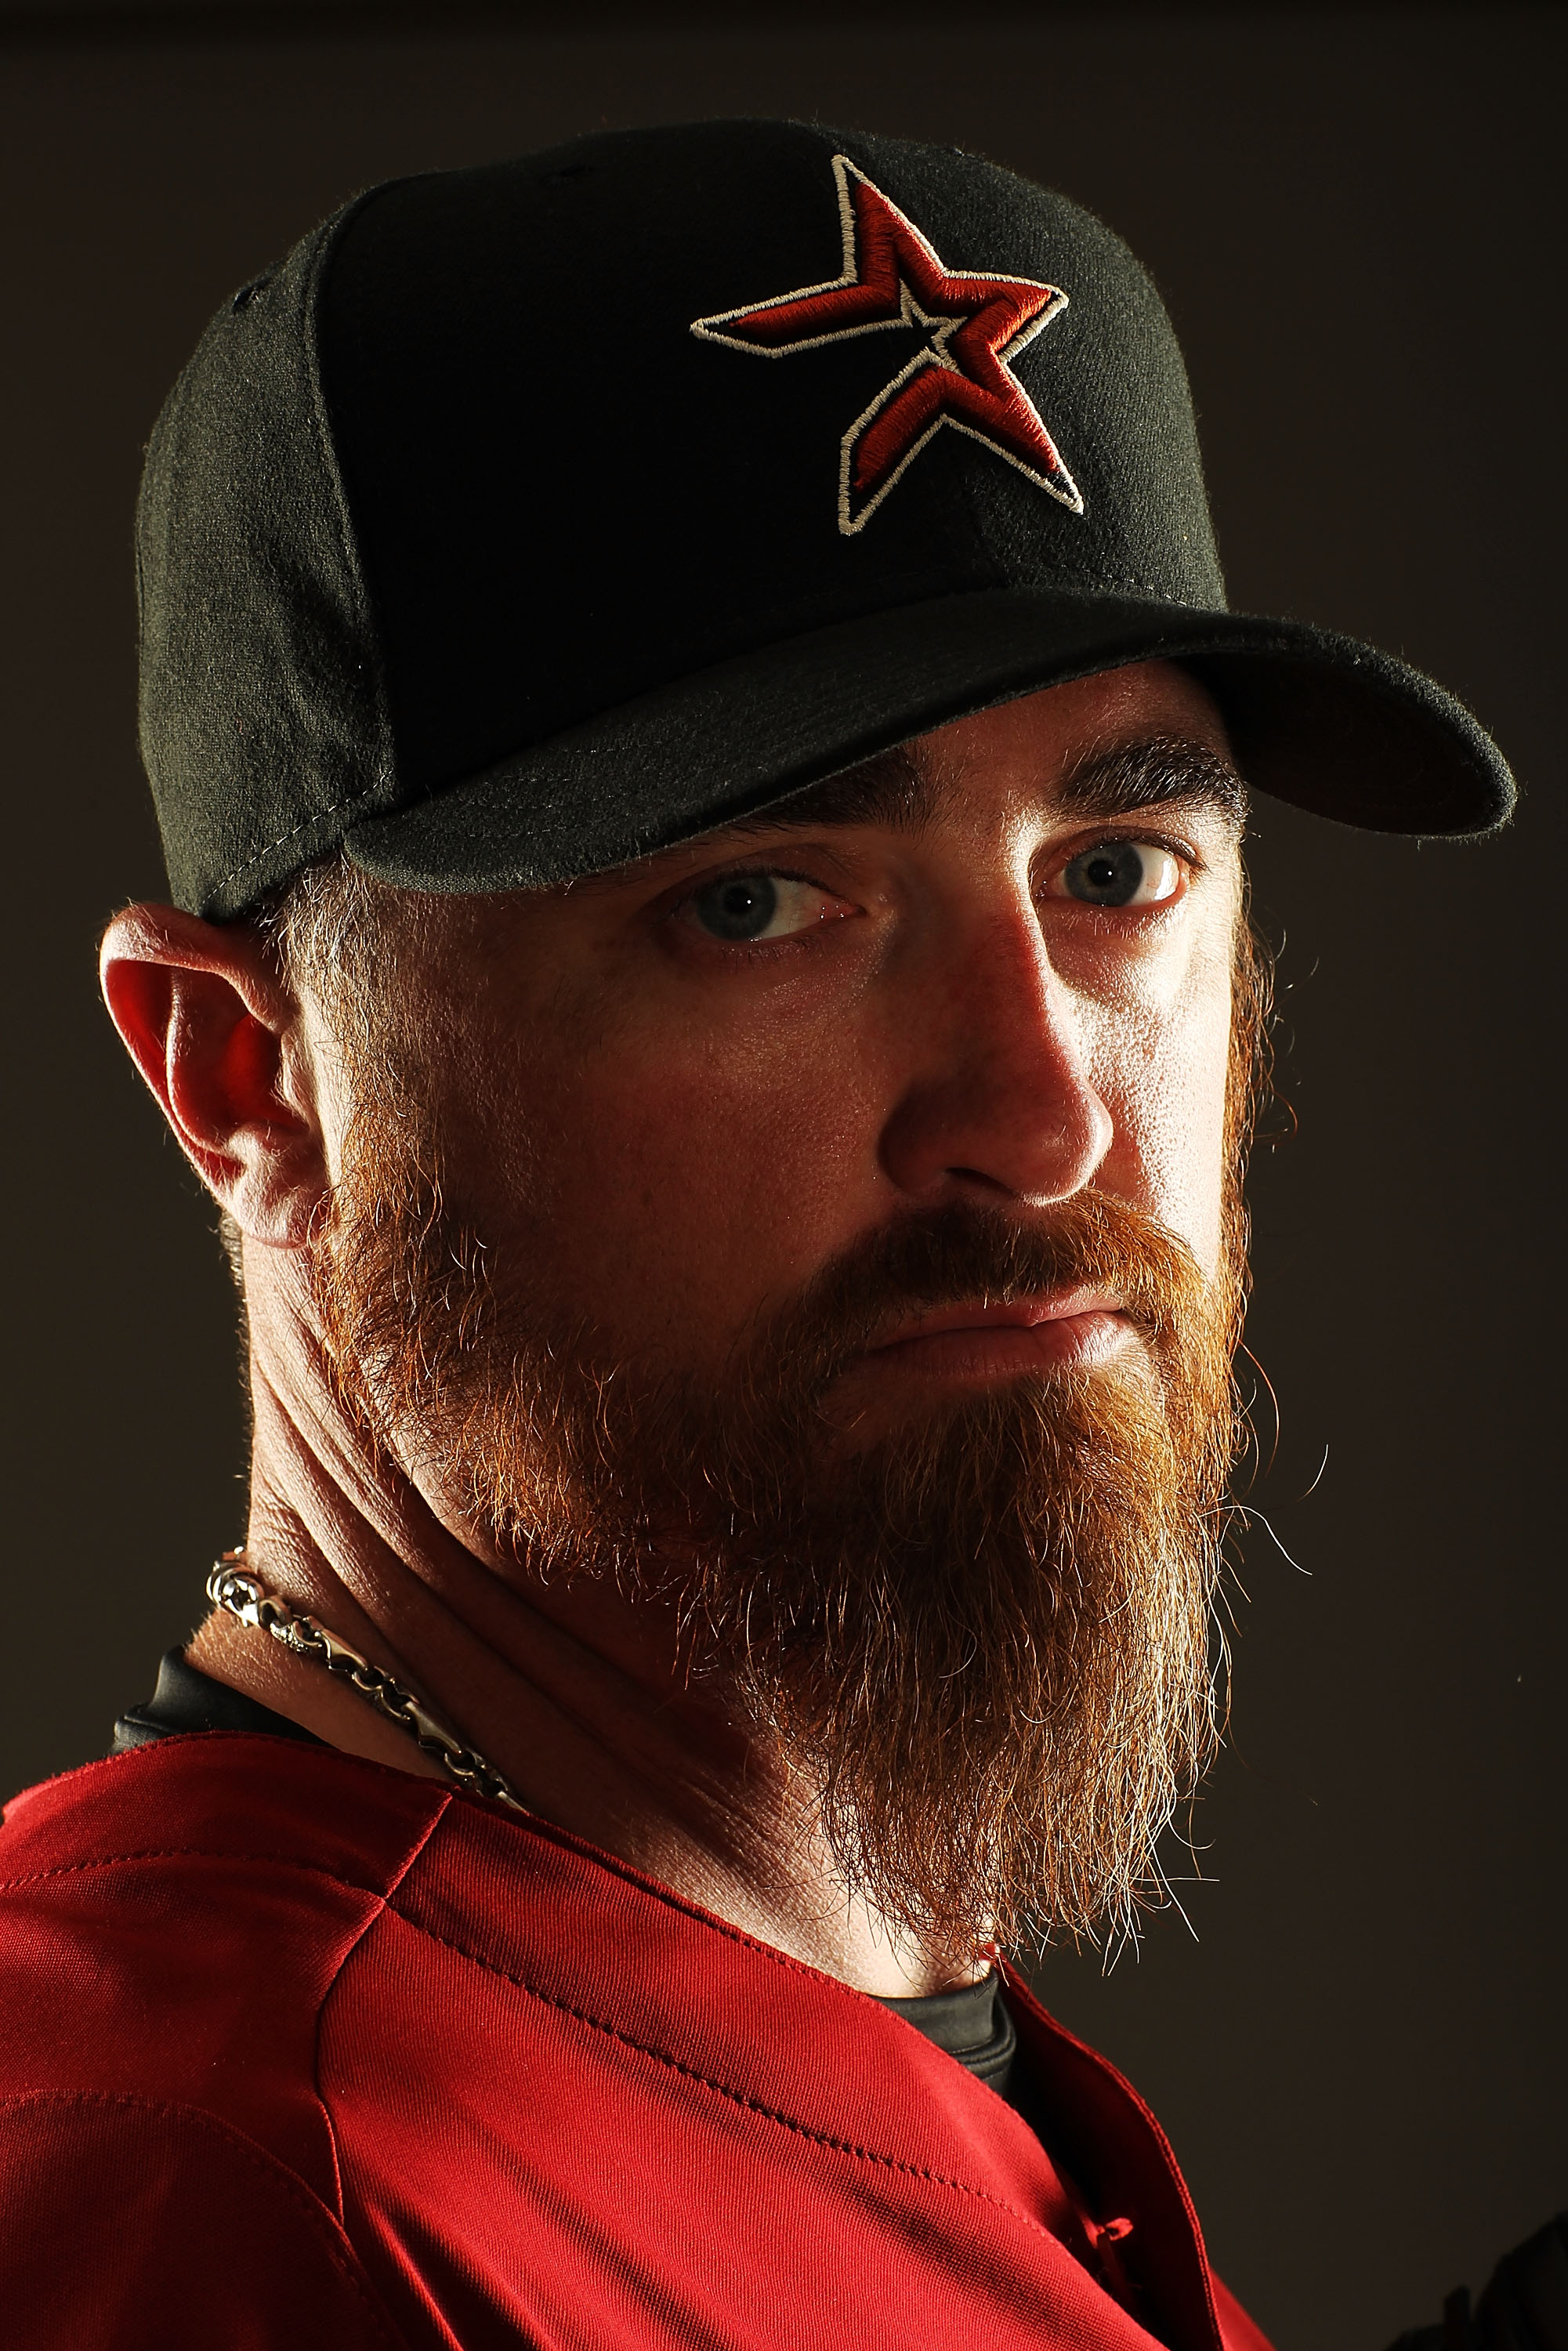 KISSIMMEE, FL - FEBRUARY 24:  Brett Myers #39 of the Houston Astros poses for a portrait Spring Training photo Day at Osceola County Stadium  on February 24, 2011 in Kissimmee, Florida.  (Photo by Al Bello/Getty Images)